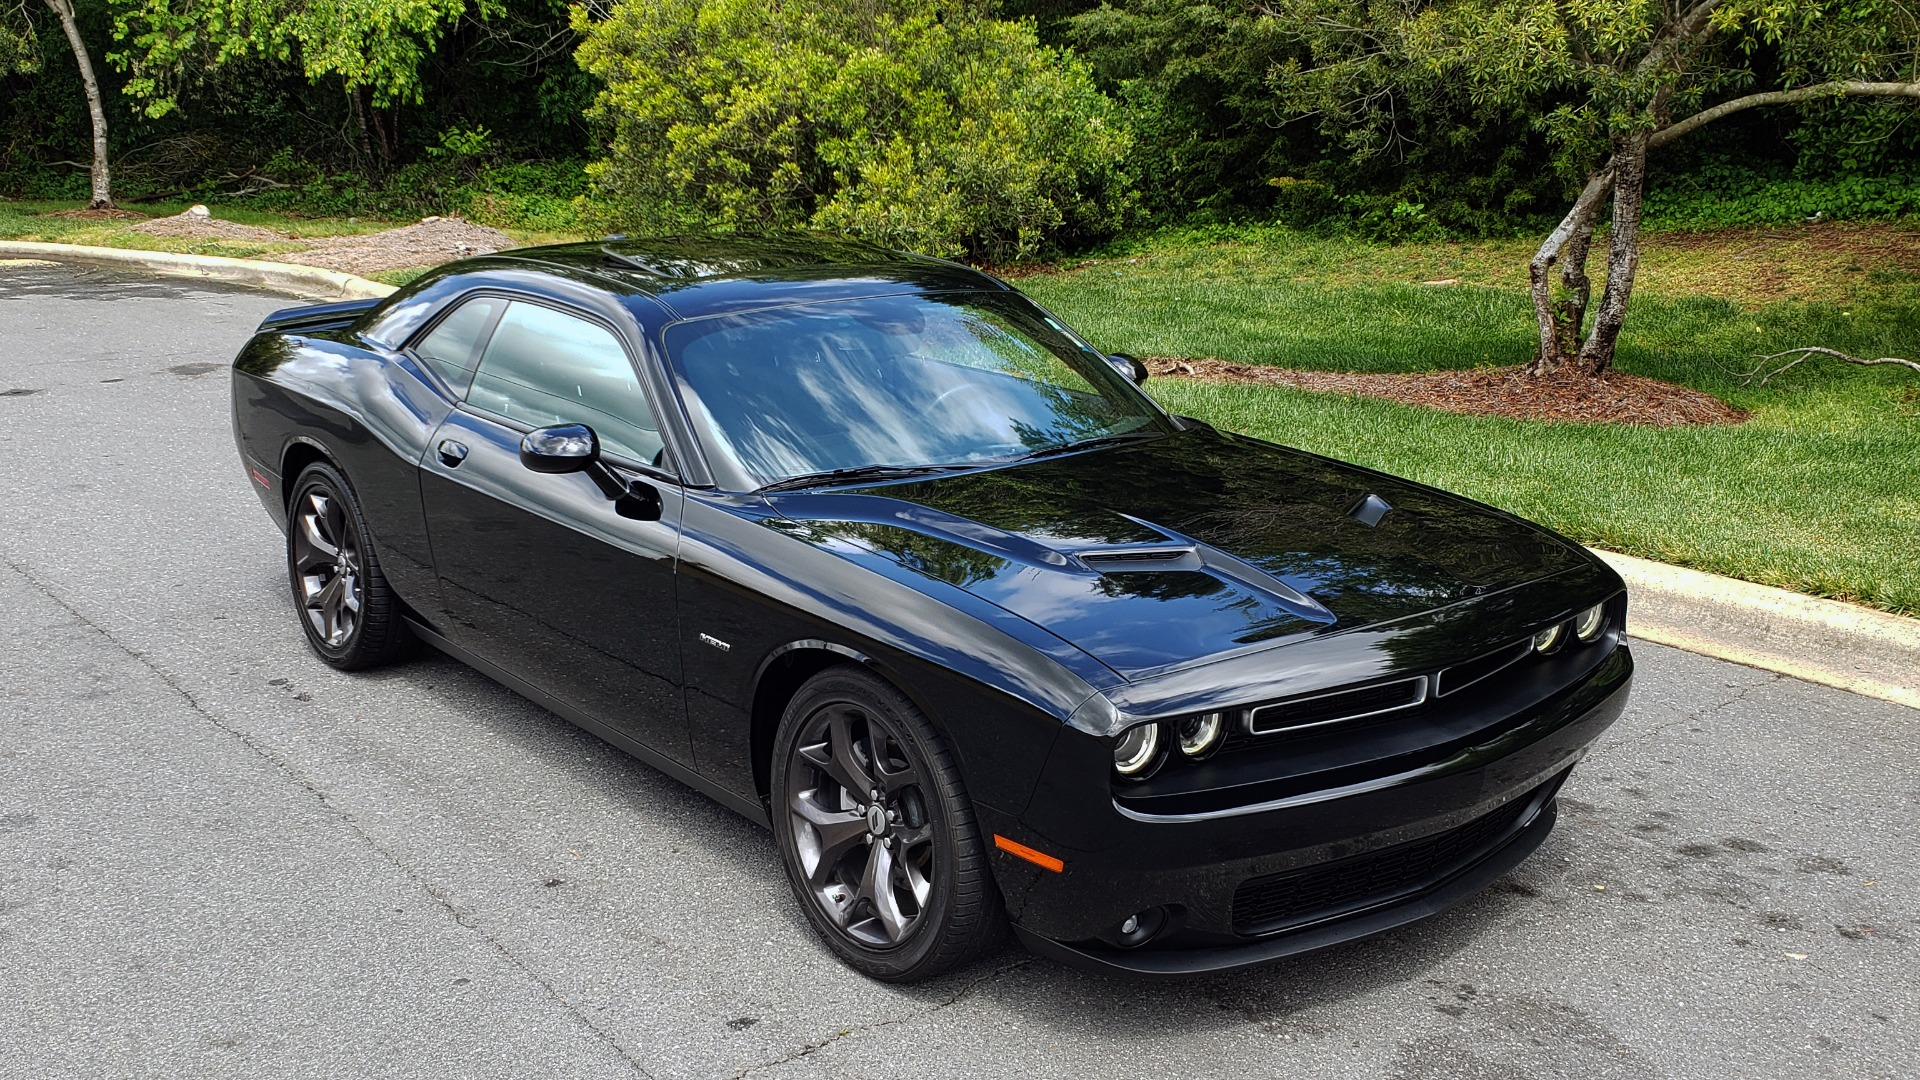 Used 2017 Dodge CHALLENGER R/T / 5.7L HEMI V8 / 8-SPD AUTO / SUNROOF / REARVIEW for sale Sold at Formula Imports in Charlotte NC 28227 4